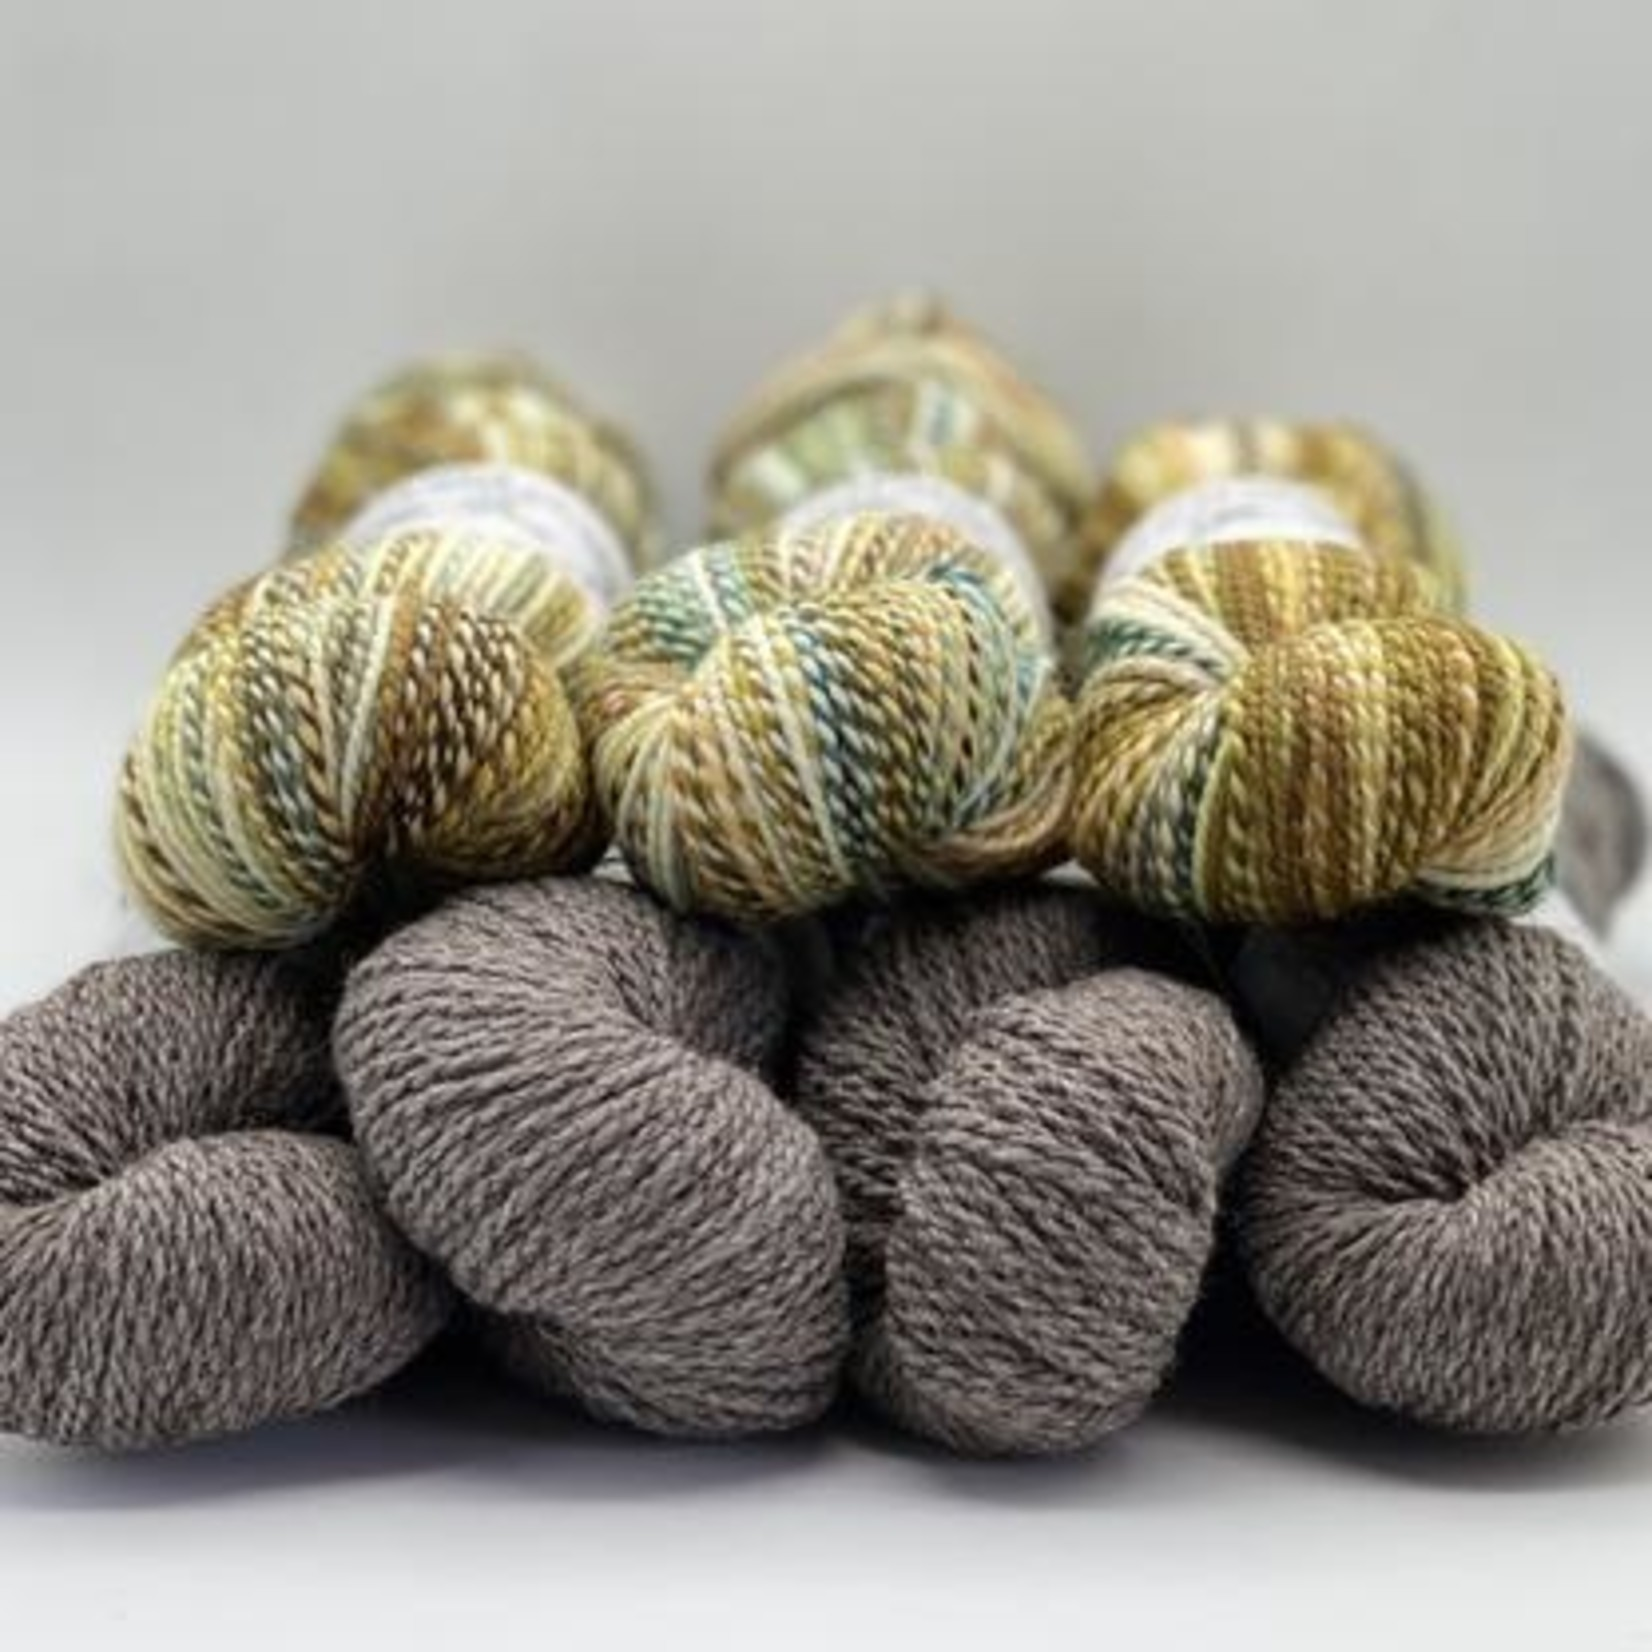 Spincycle Yarn Dyed in the Wool, Summer Love